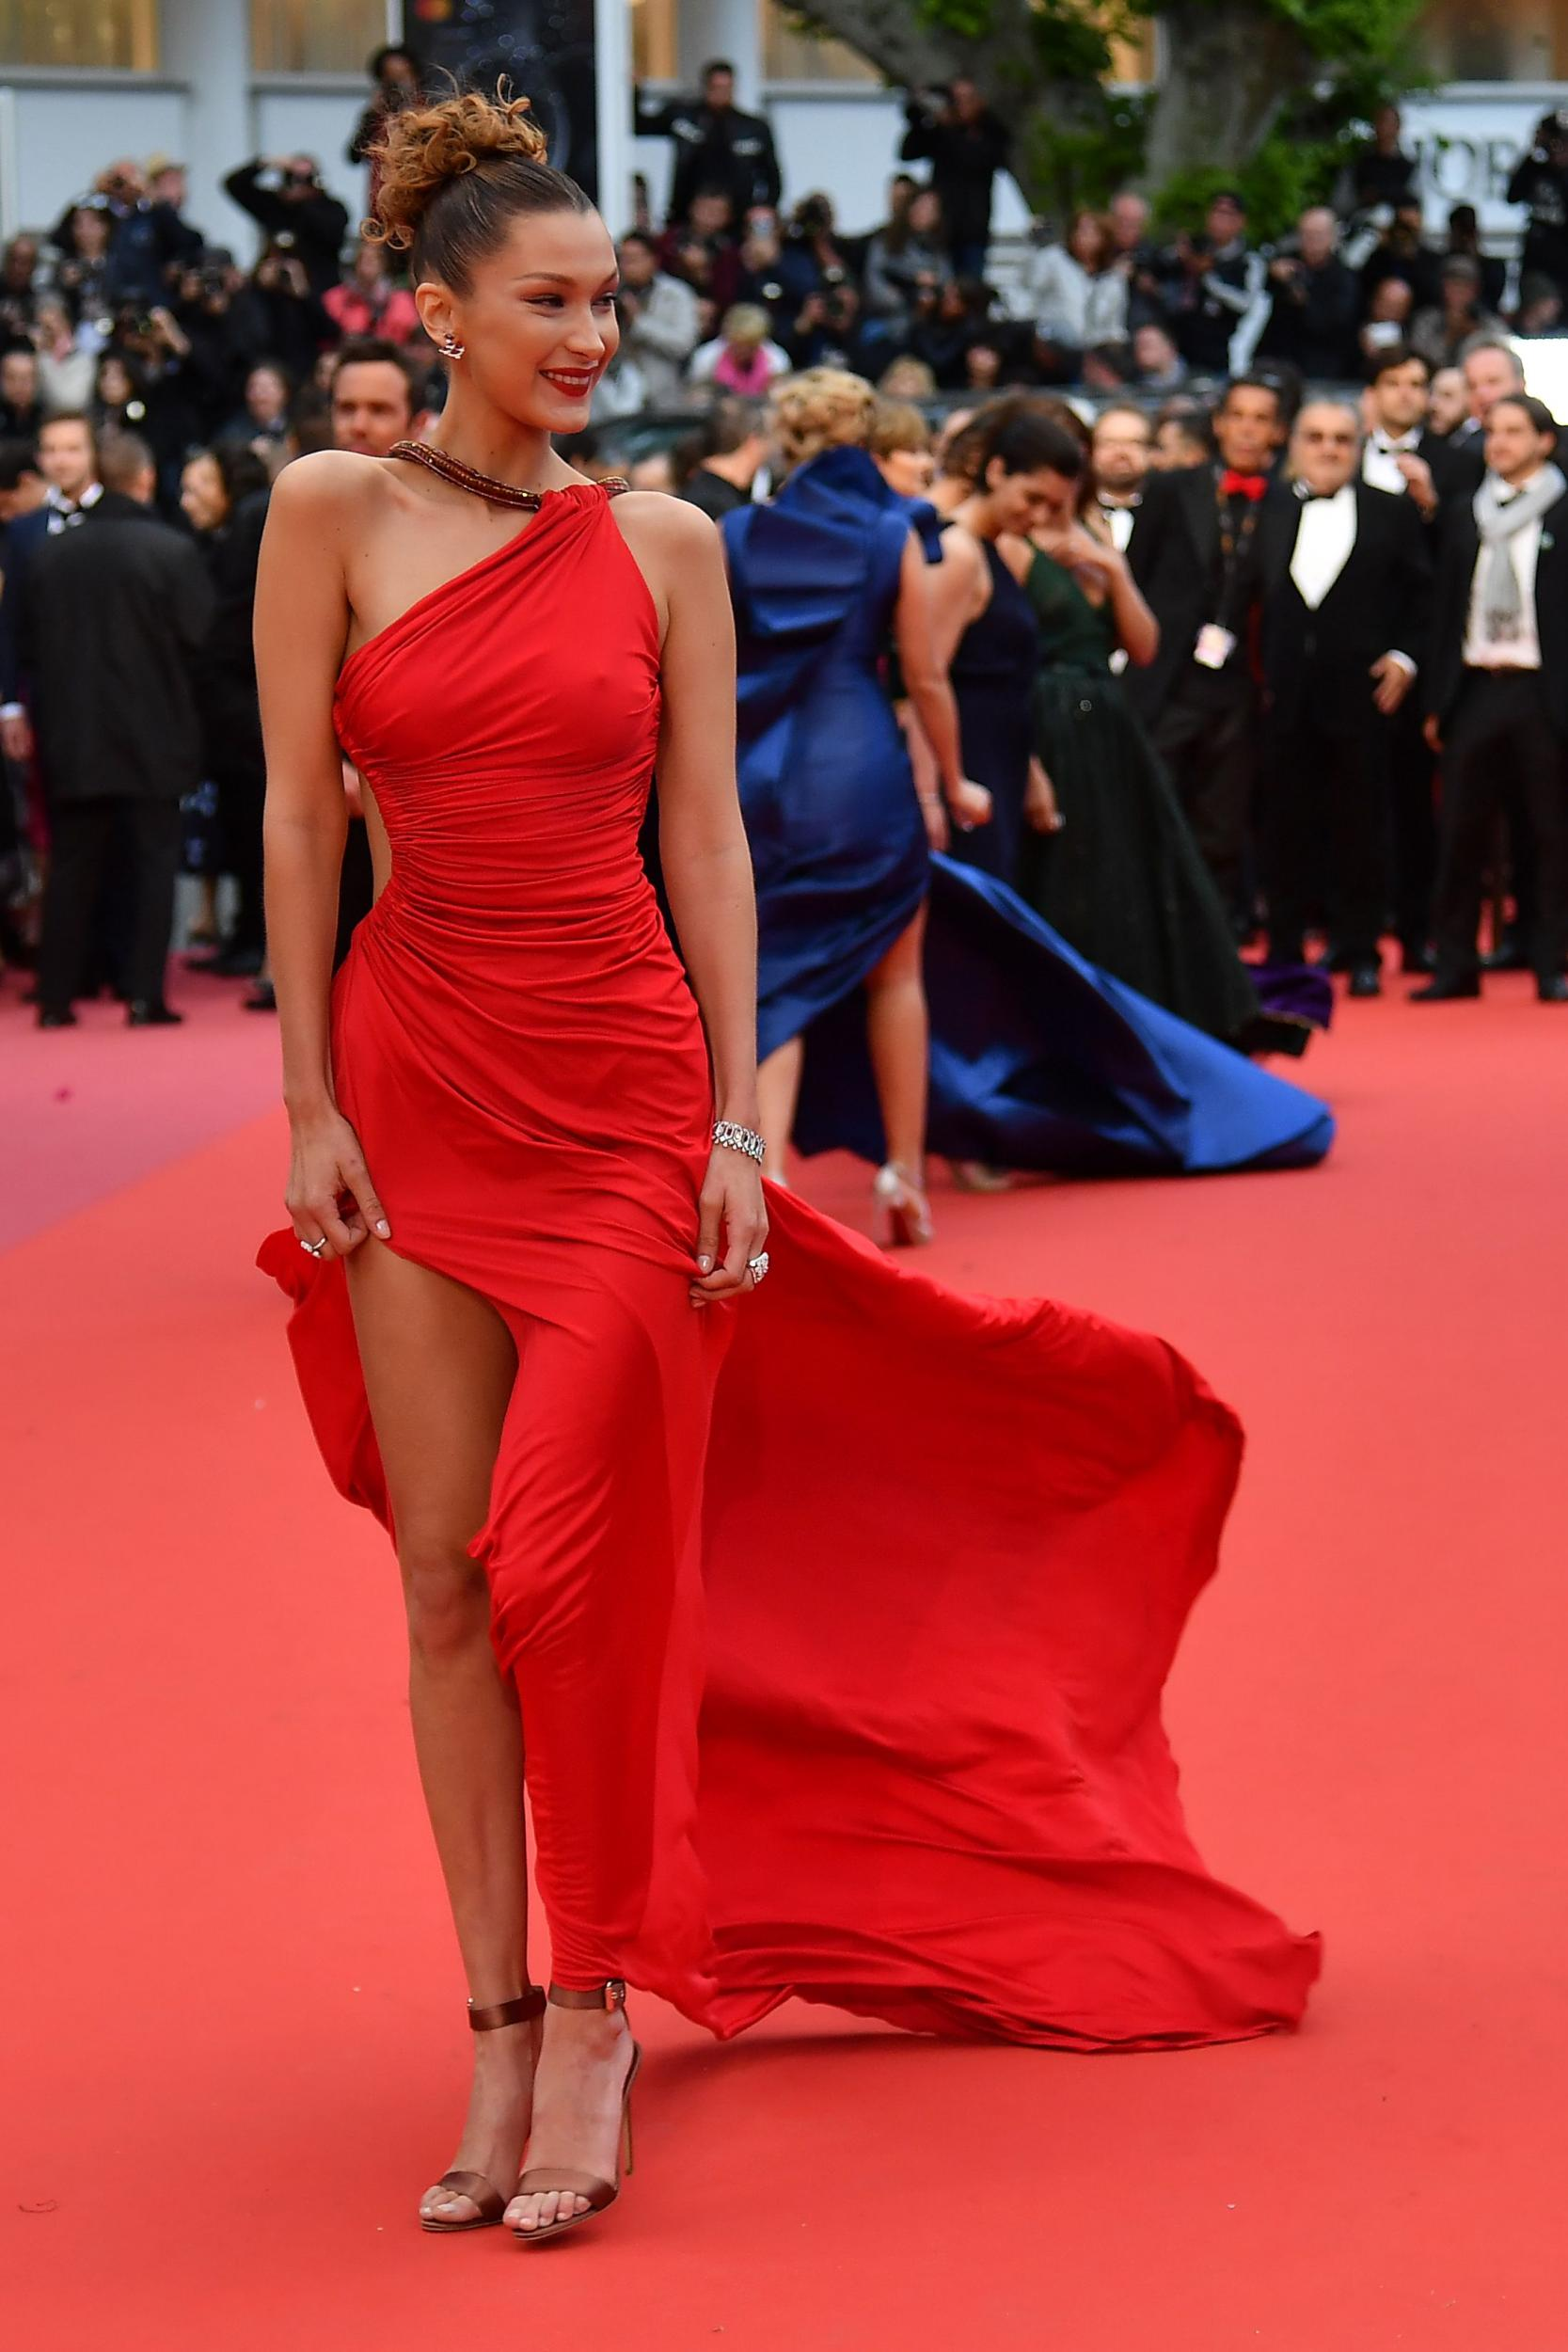 97c2a353e92263 HolaBuzz | All the stylish attendees at Cannes Film Festival 2019 ...